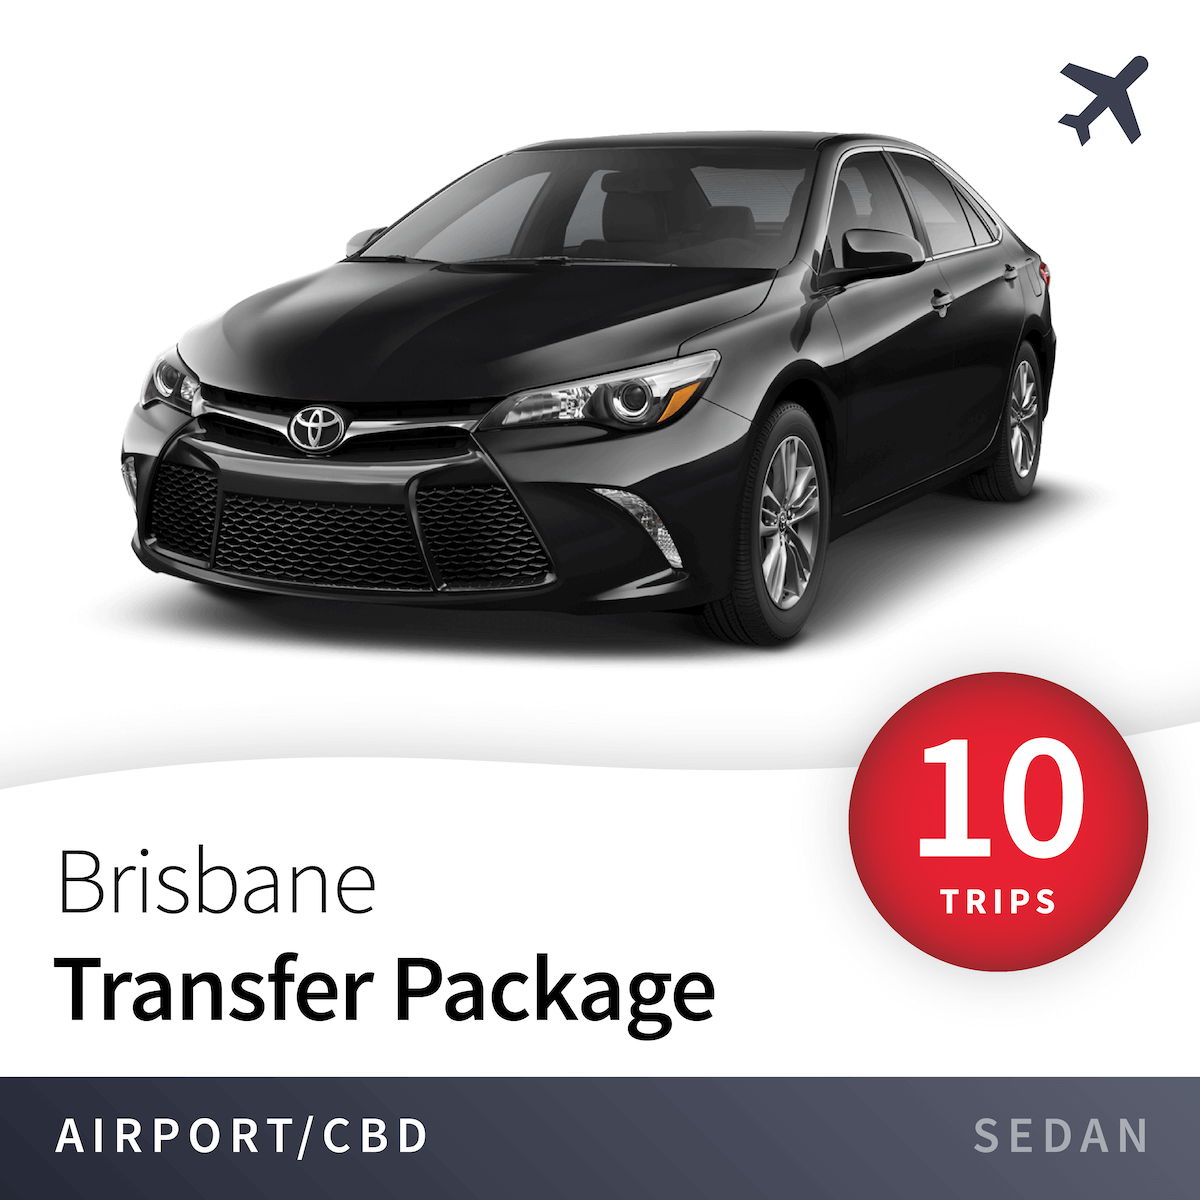 Brisbane Airport Transfer Package - Sedan (10 Trips) 8